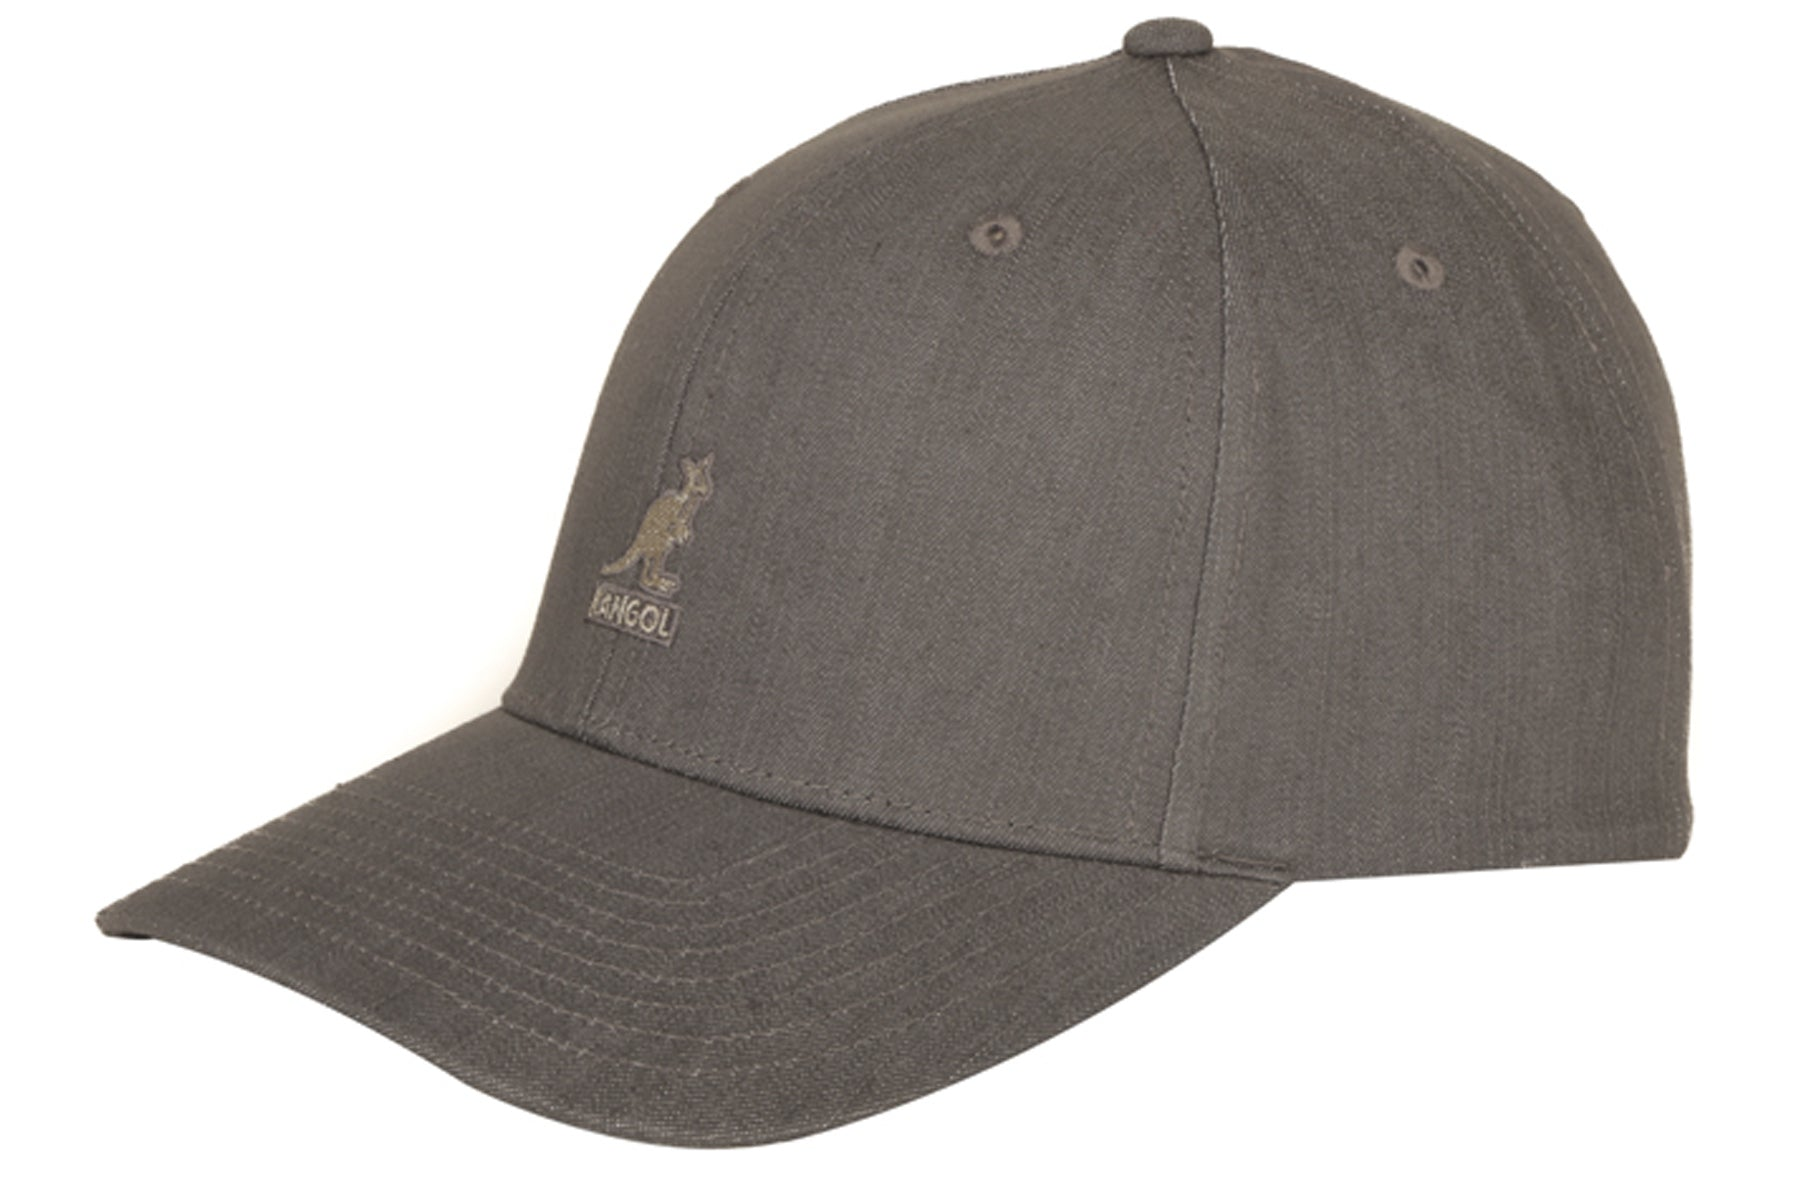 Kangol Denim Flex Fit Baseball Cap